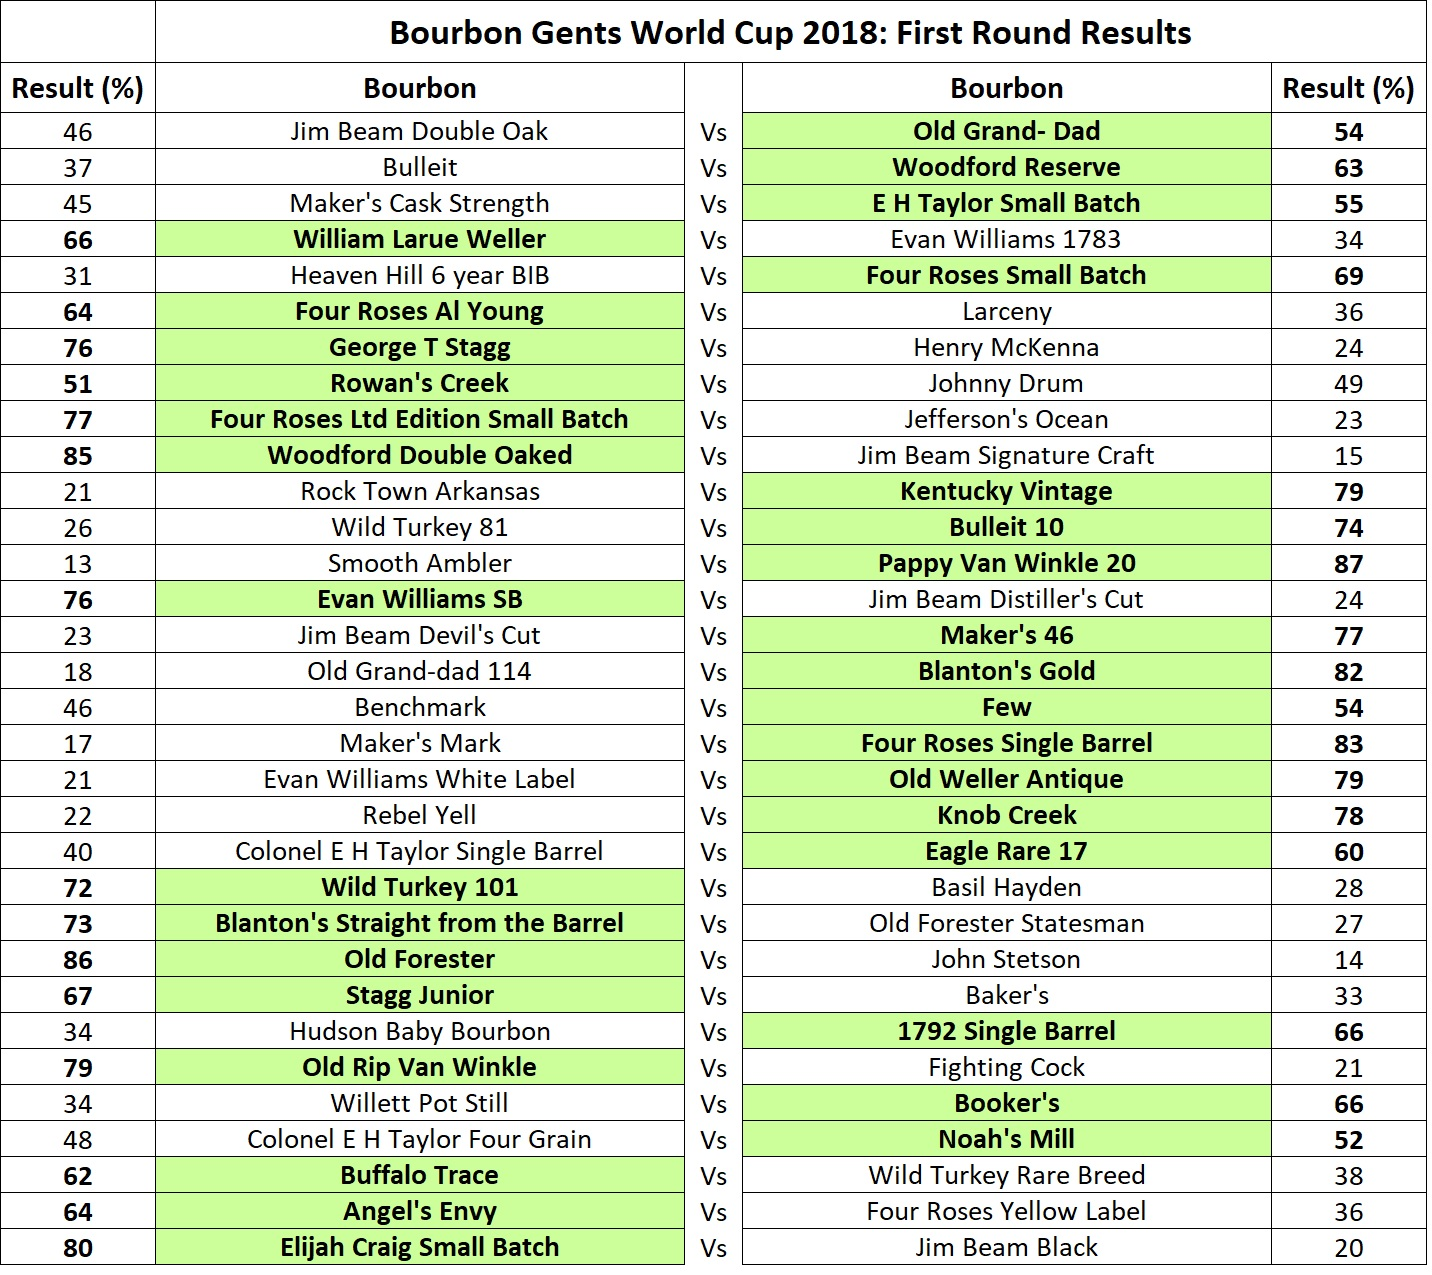 64 teams were entered into the first round and only those in 'Green' have made it through to R2